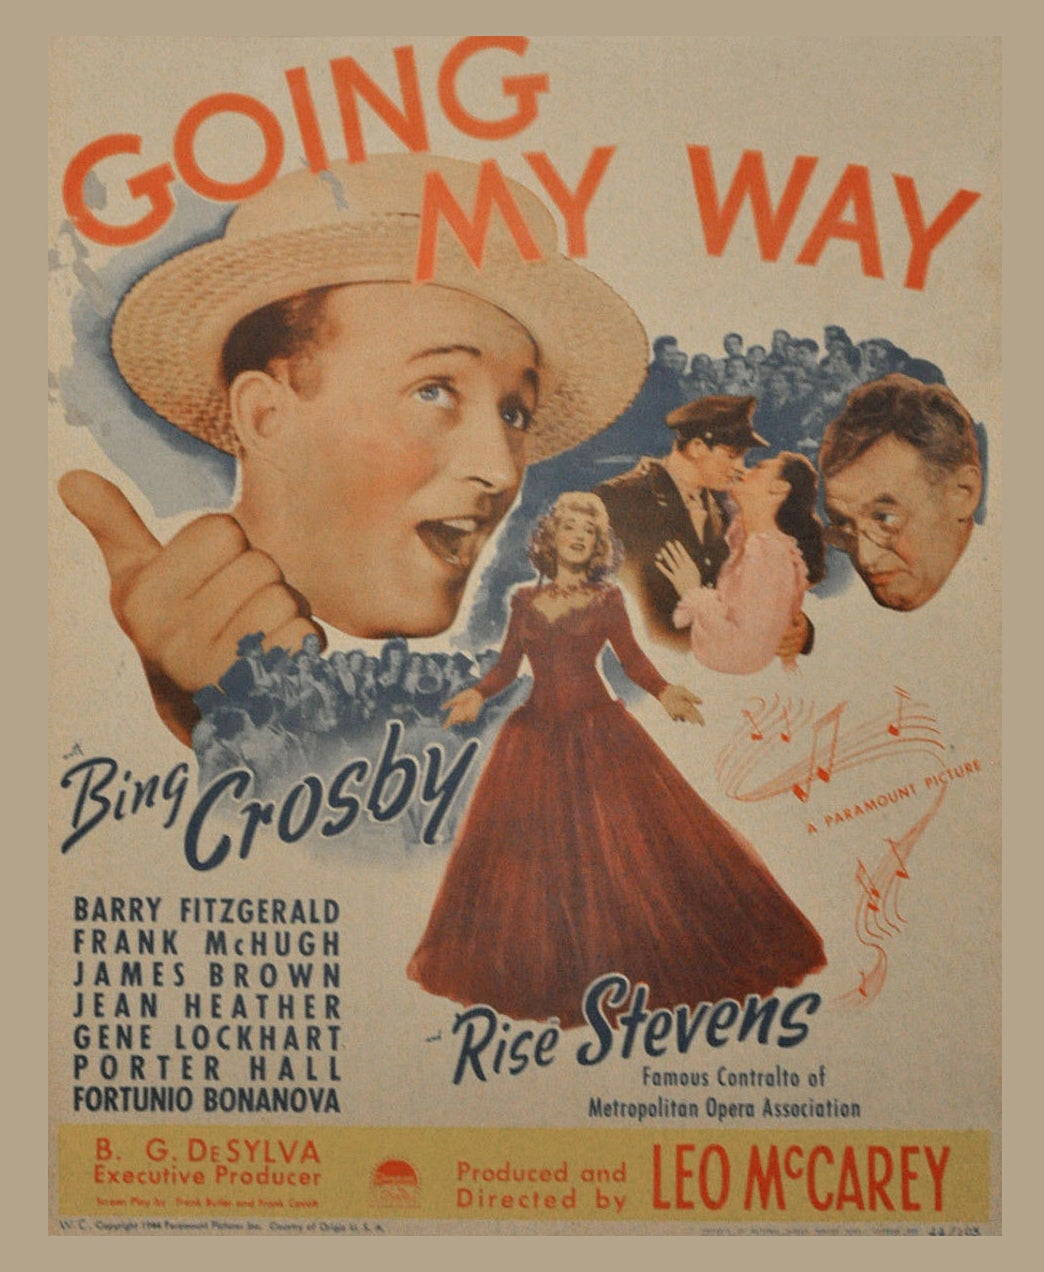 1945 - Going My Way movie poster